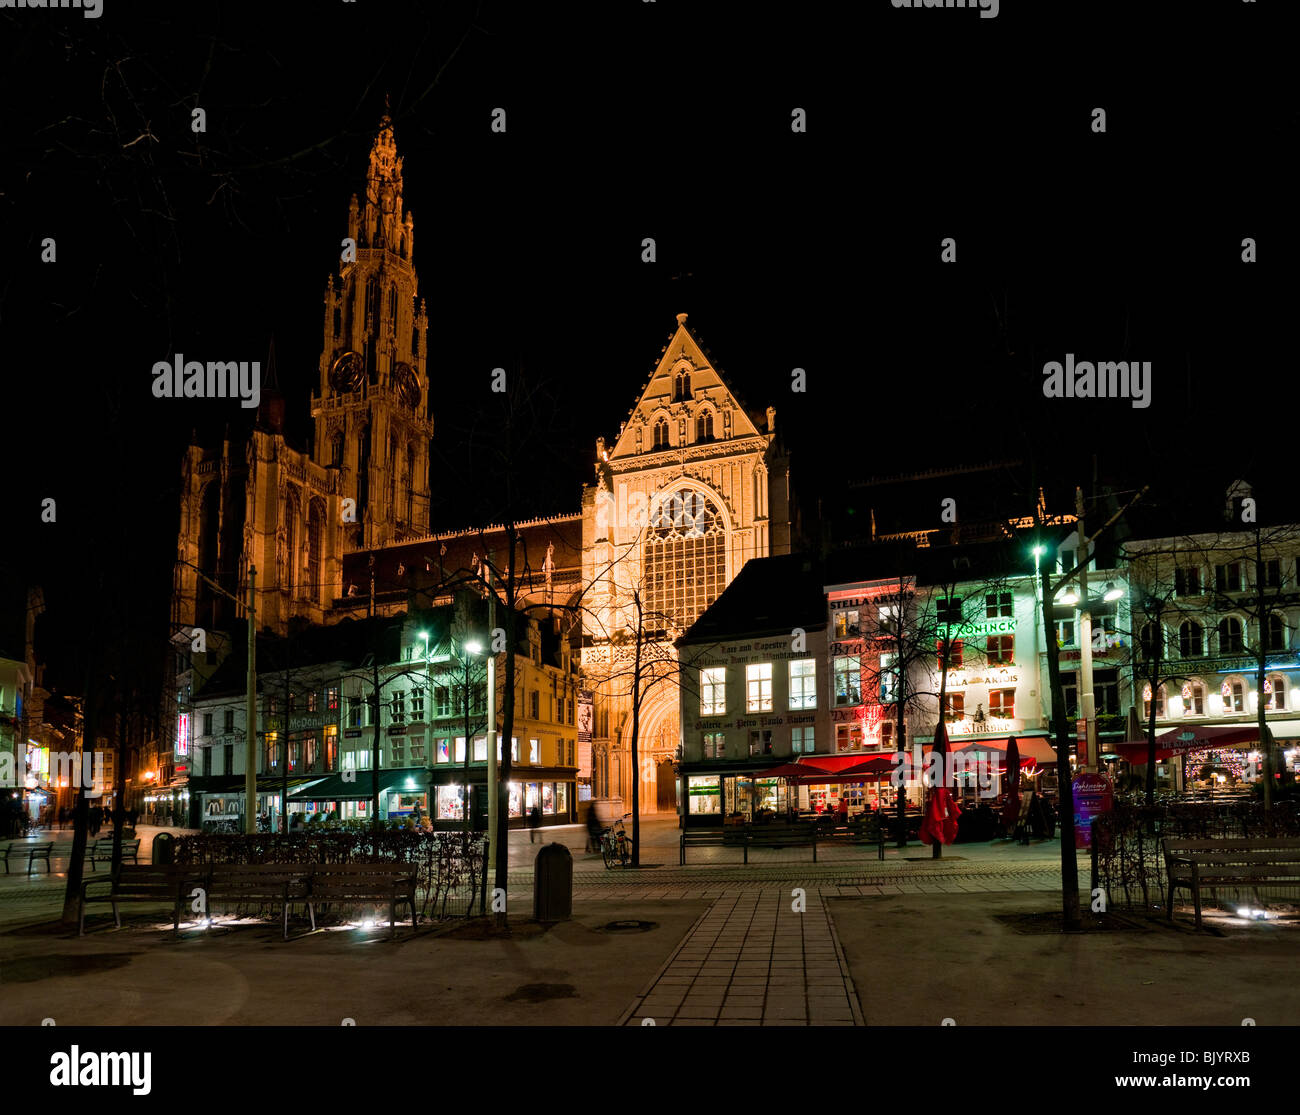 Oscar Niemeyer 1907 2012 Dead At 104 besides Stock Photo Night View Of Cathedral Of Our Lady In Antwerp Belgium 28885651 additionally Marchand Meffre Sur Les Traces De Niemeyer Au Liban in addition Mid 21st Century Modern That Jetsons Architecture 2494820 likewise Ibirapuera Auditiorium Oscar Niemeyer. on oscar niemeyer architecture style